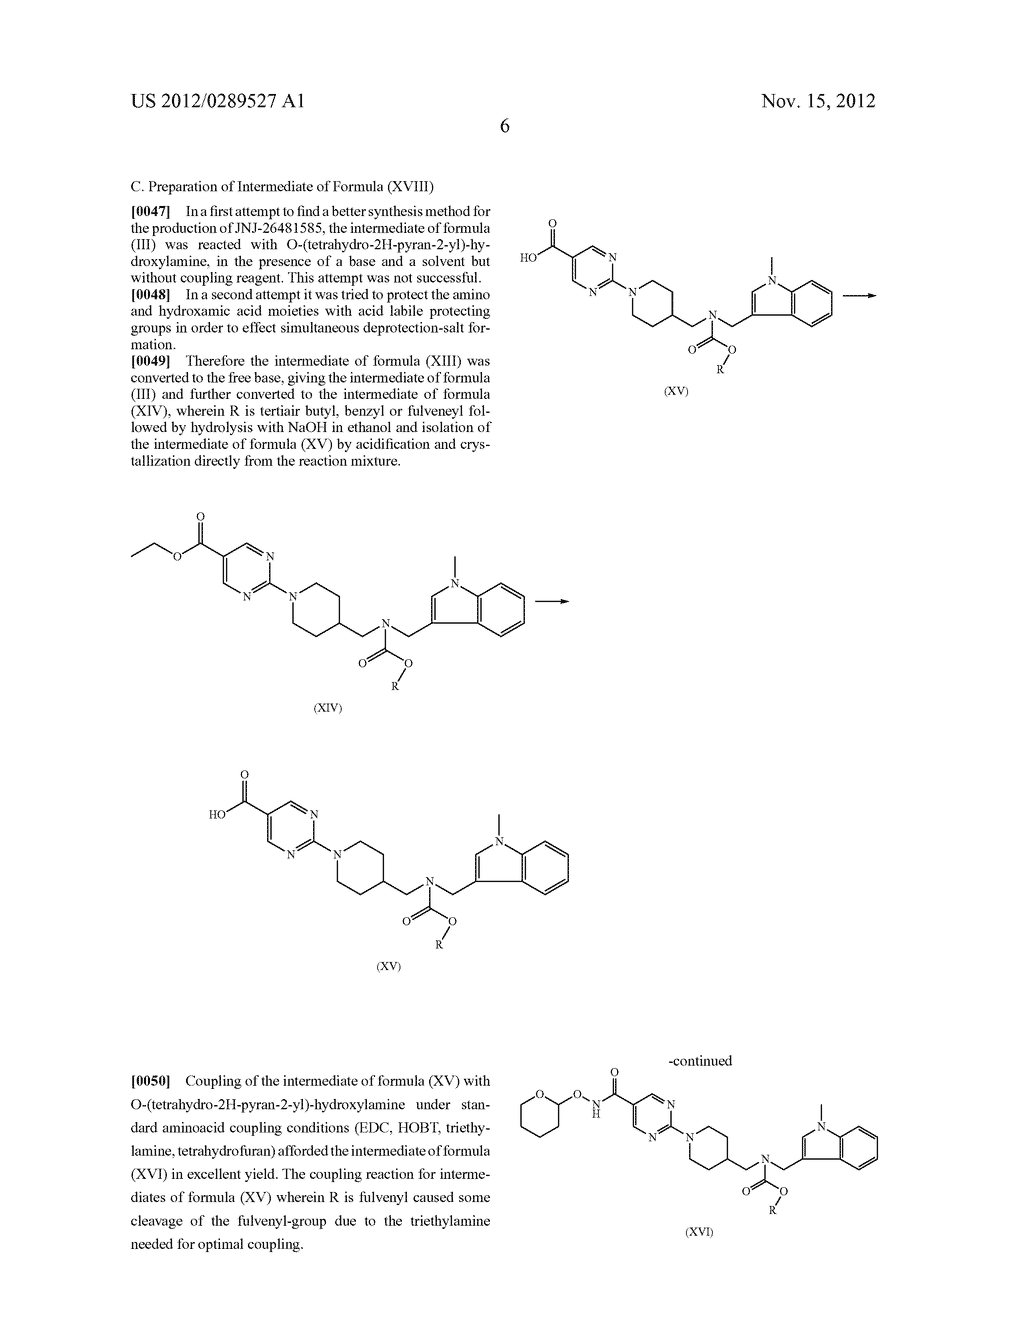 MONO-HYDROCHLORIC SALTS OF AN INHIBITOR OF HISTONE DEACETYLASE - diagram, schematic, and image 23